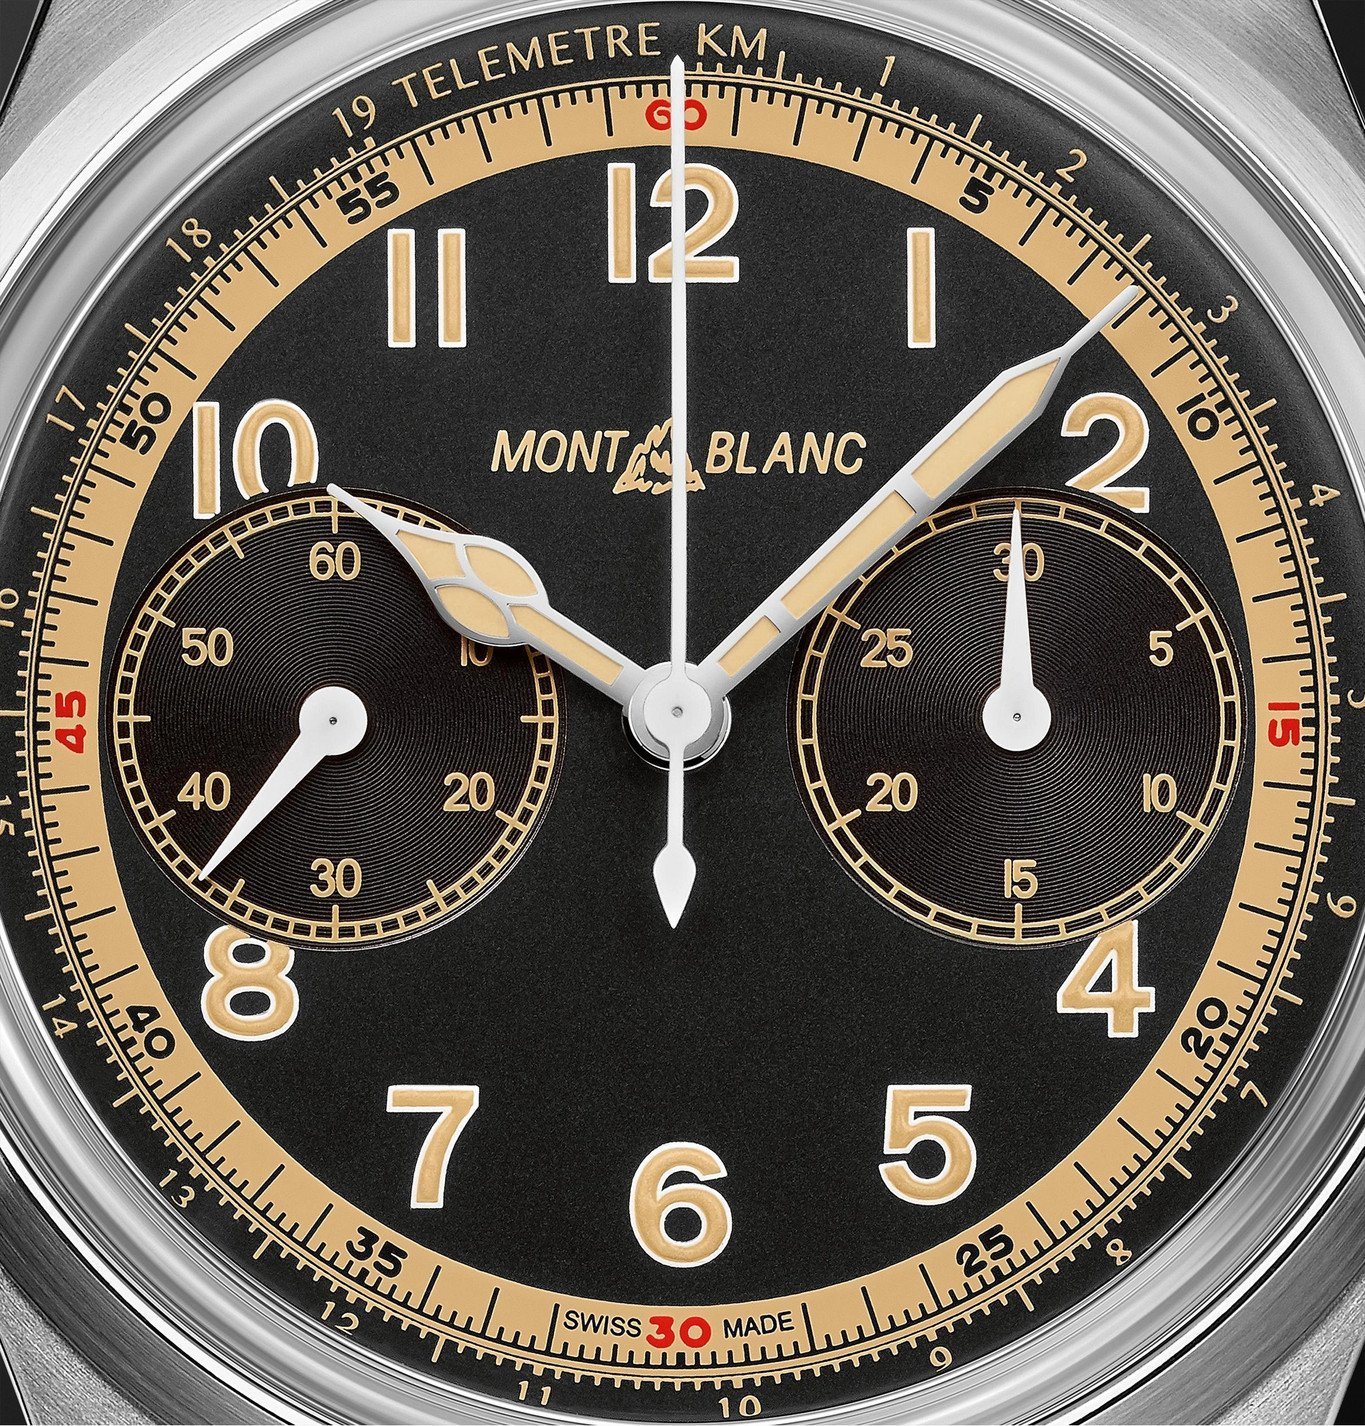 Montblanc - 1858 Monopusher Automatic Chronograph 42mm Stainless Steel and Leather Watch, Ref. No. 125581 - Black